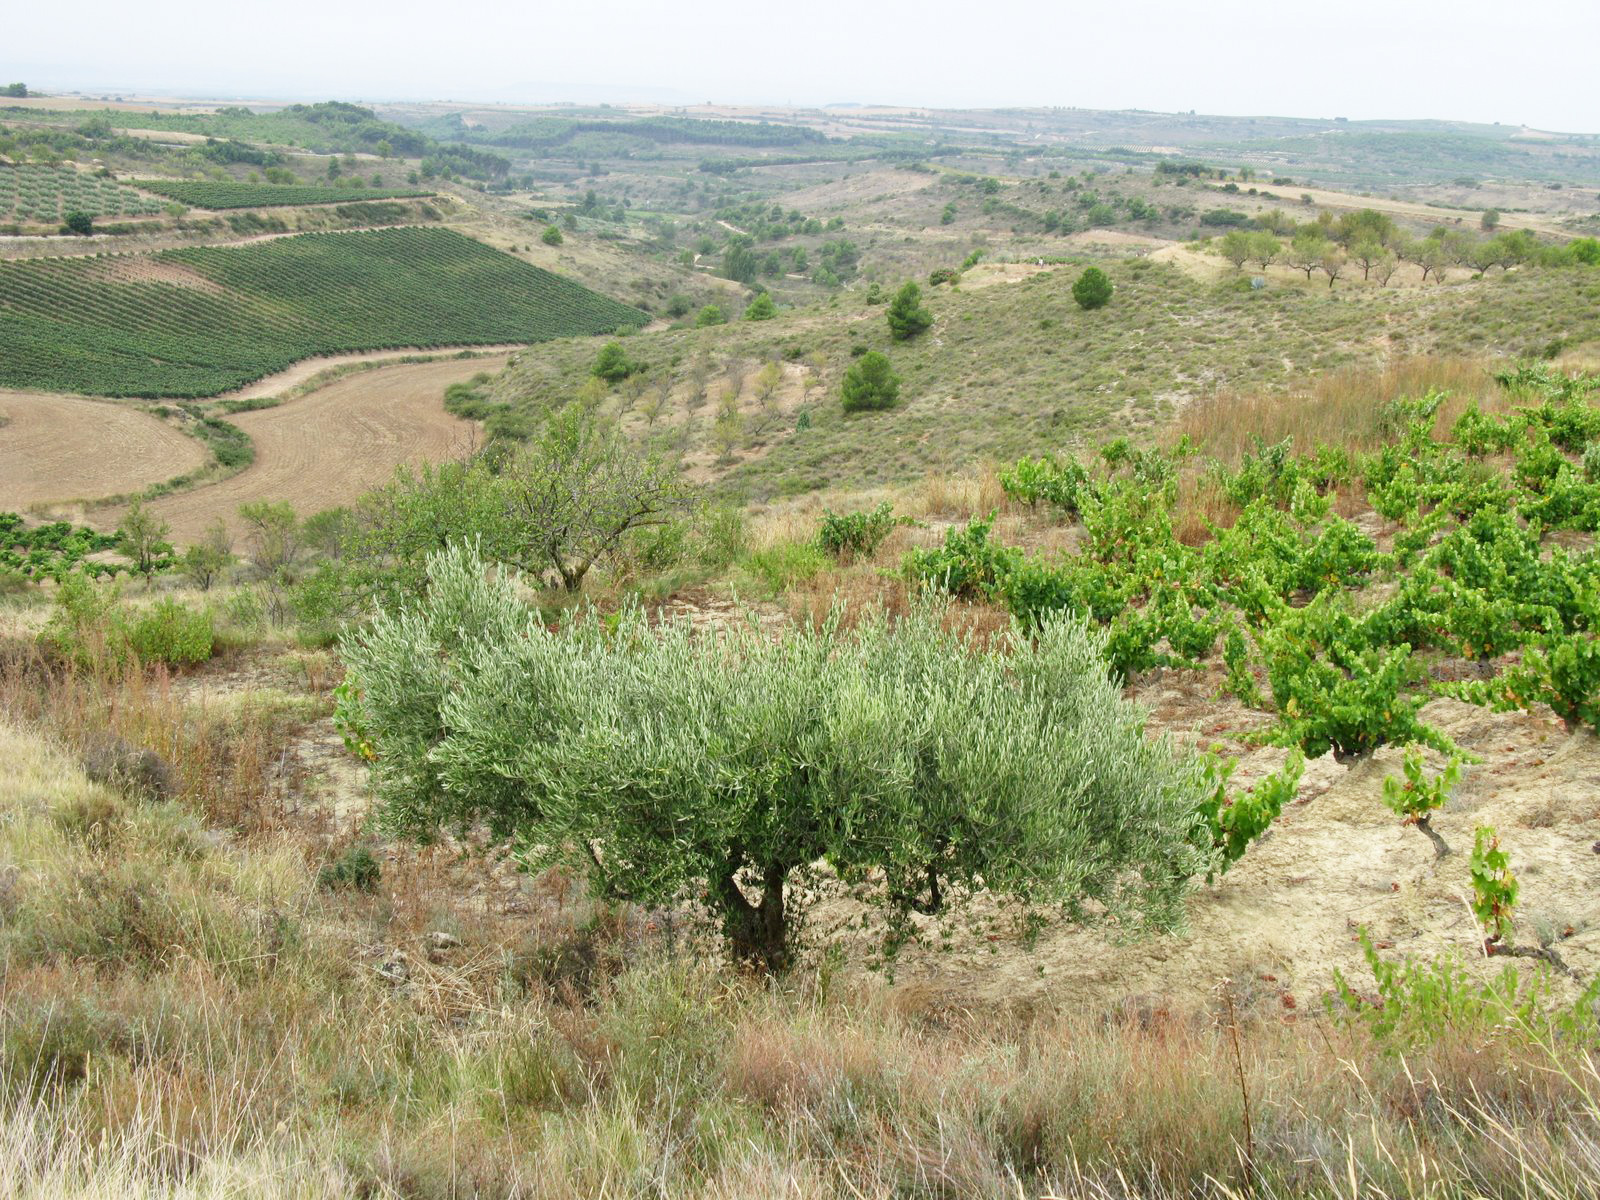 19 September 2008 – Los Arcos to Logrono